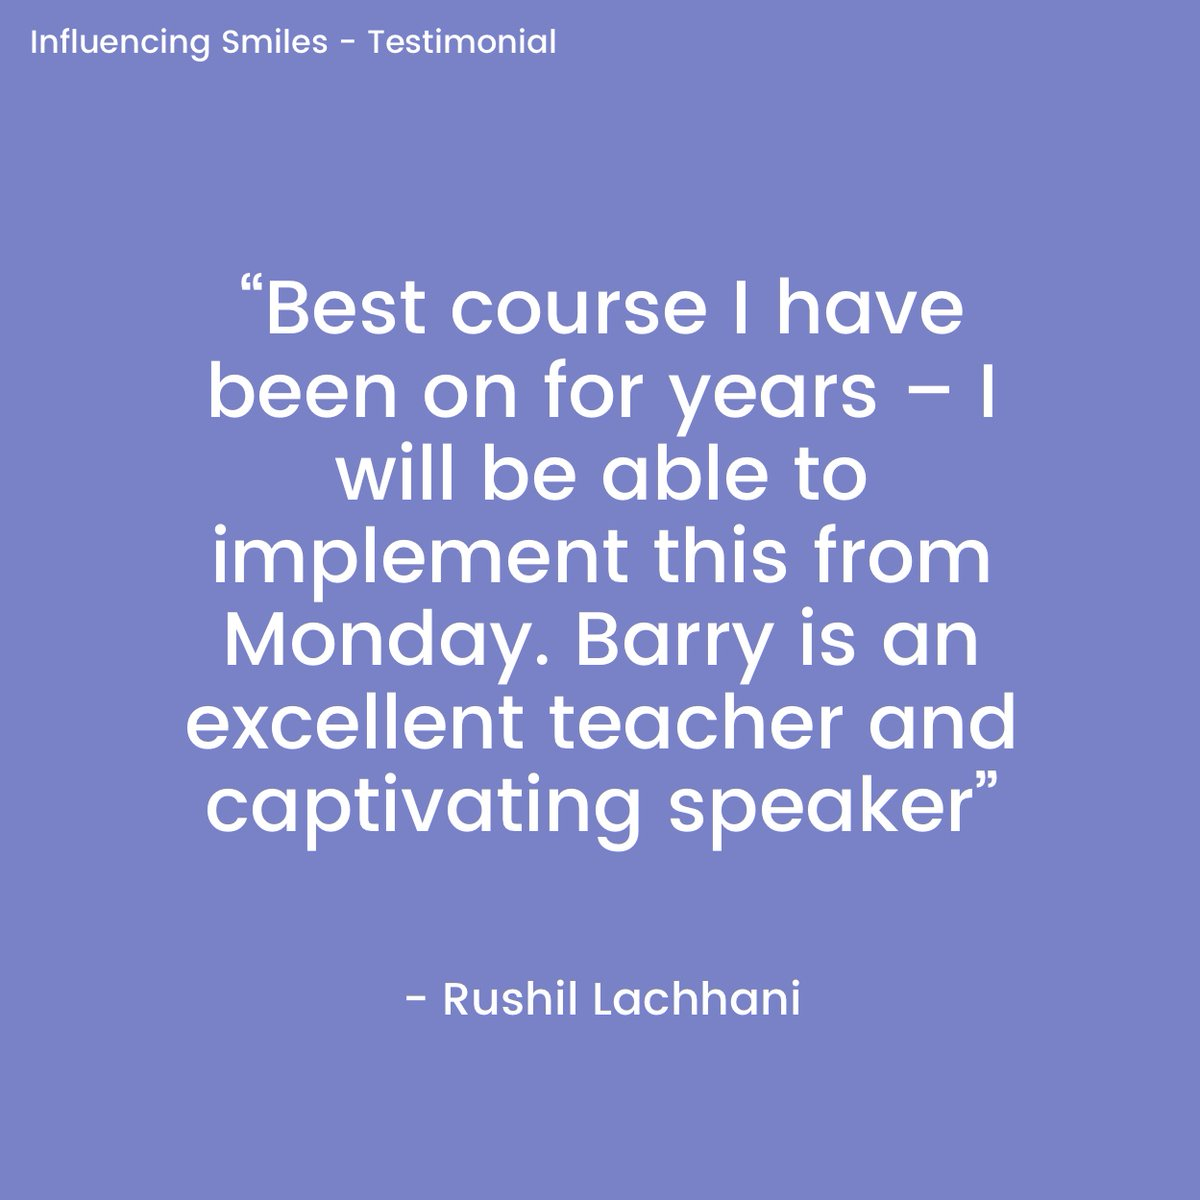 A testimonial from my Influencing Smiles course!  New dates for 2021 coming soon!!  #Dentaltraining  #Communication #Dentalsalestraining  #NLPindentistry #Positivemindset #Dentalcoach #Theconfidentdentist #Confidentdentist #Teamcoaching #Greatcommunicaton  #influencingsmiles https://t.co/5DIJf1Zjzv